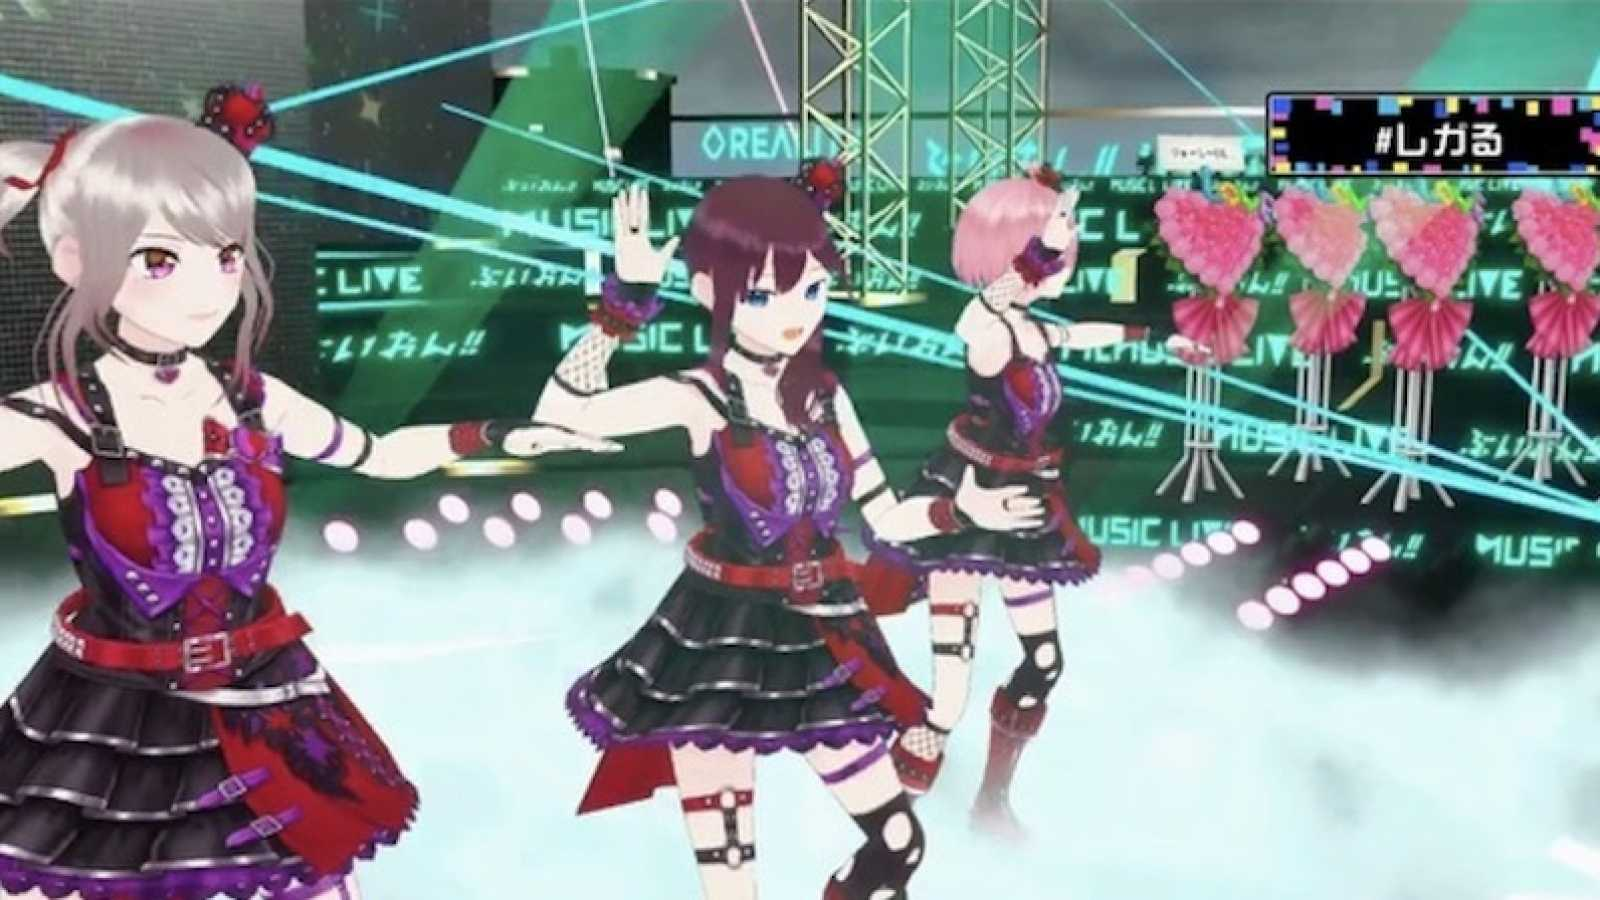 New Virtual Metal Idol Unit REGALILIA Debuts  © MateReal inc. All rights reserved.